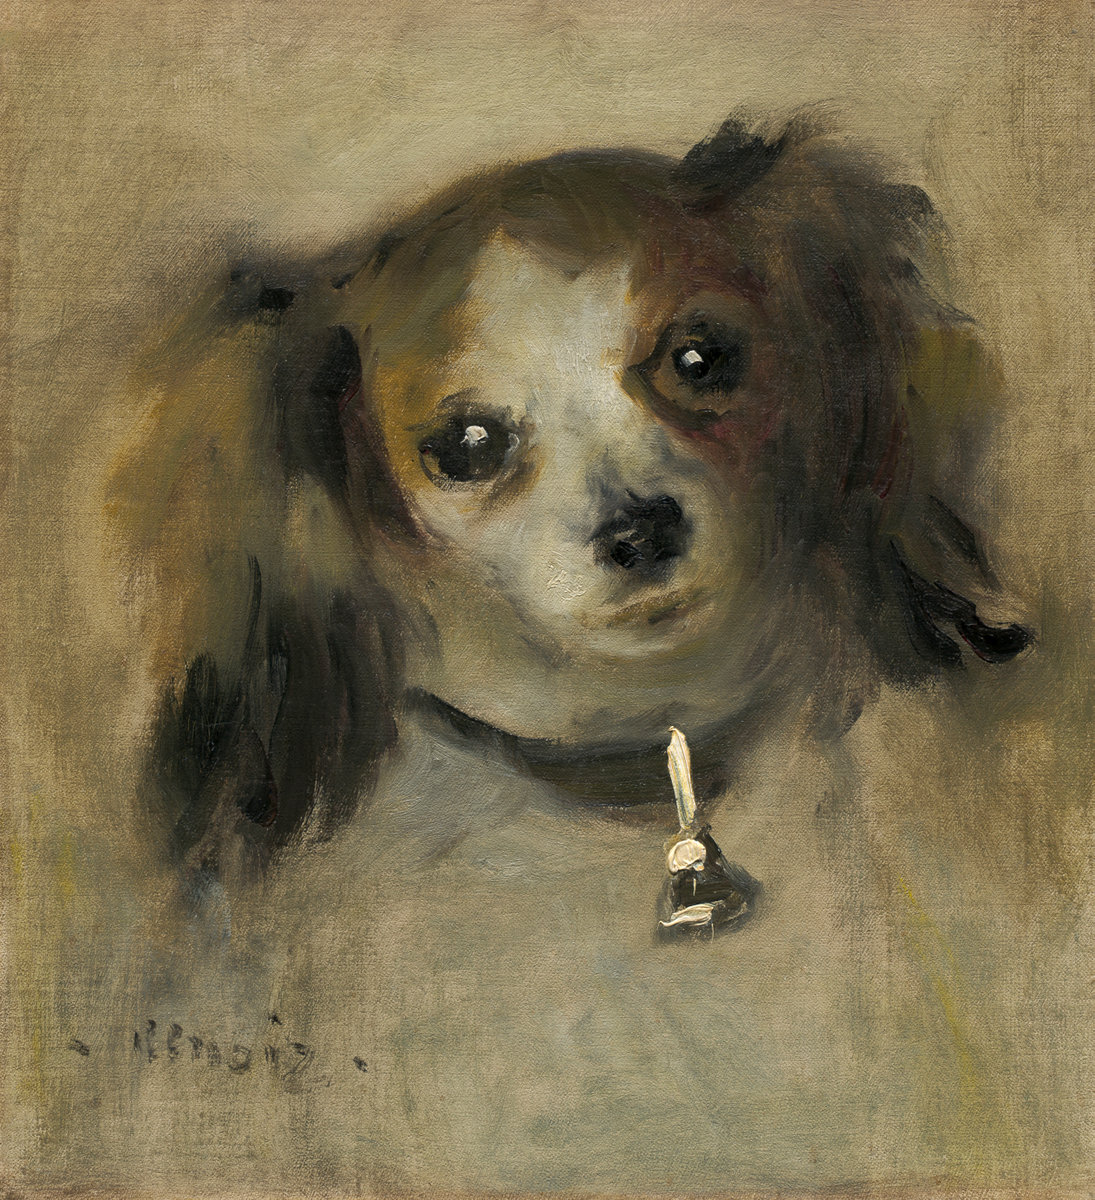 Pierre-Auguste Renoir, Head of a Dog, 1870